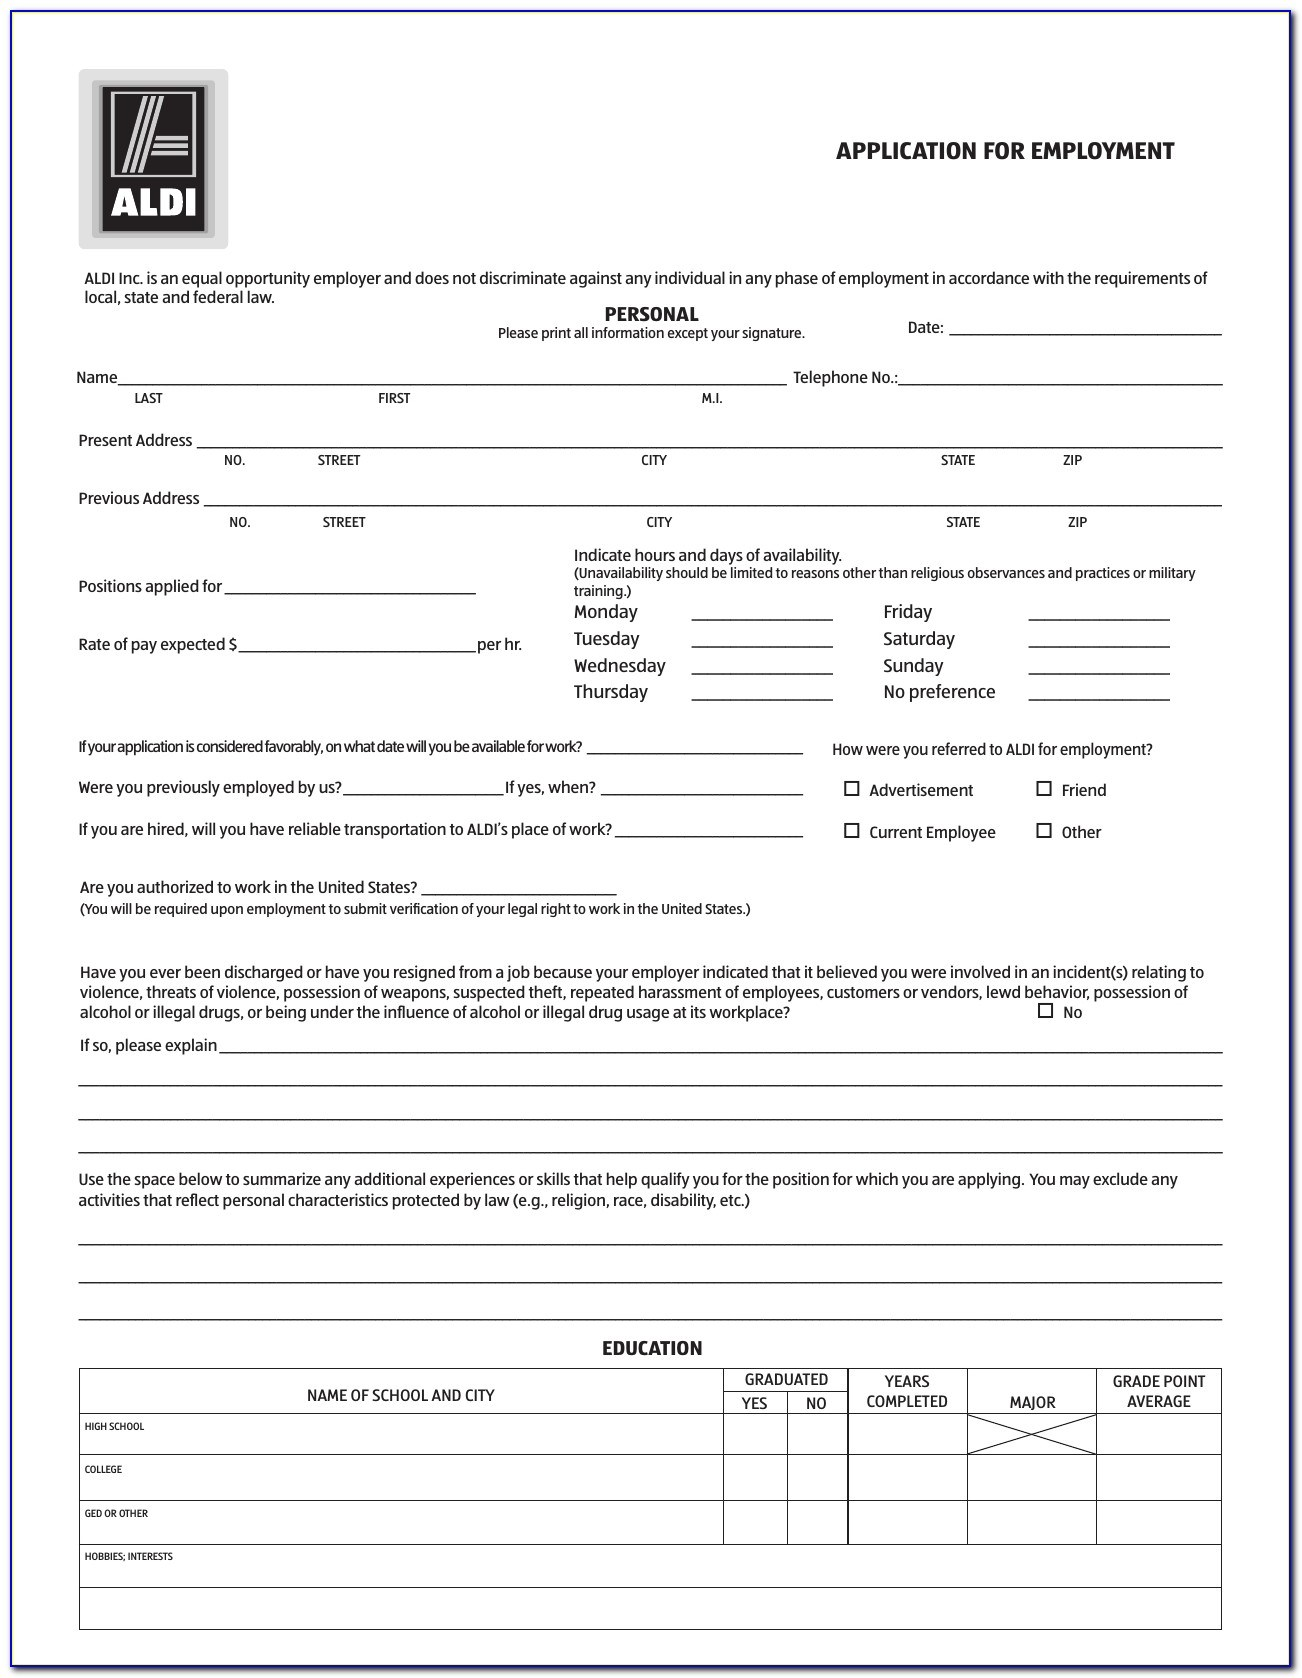 Download Aldi Job Application Form – Careers | Pdf | Freedownloads Pertaining To Aldi Job Application